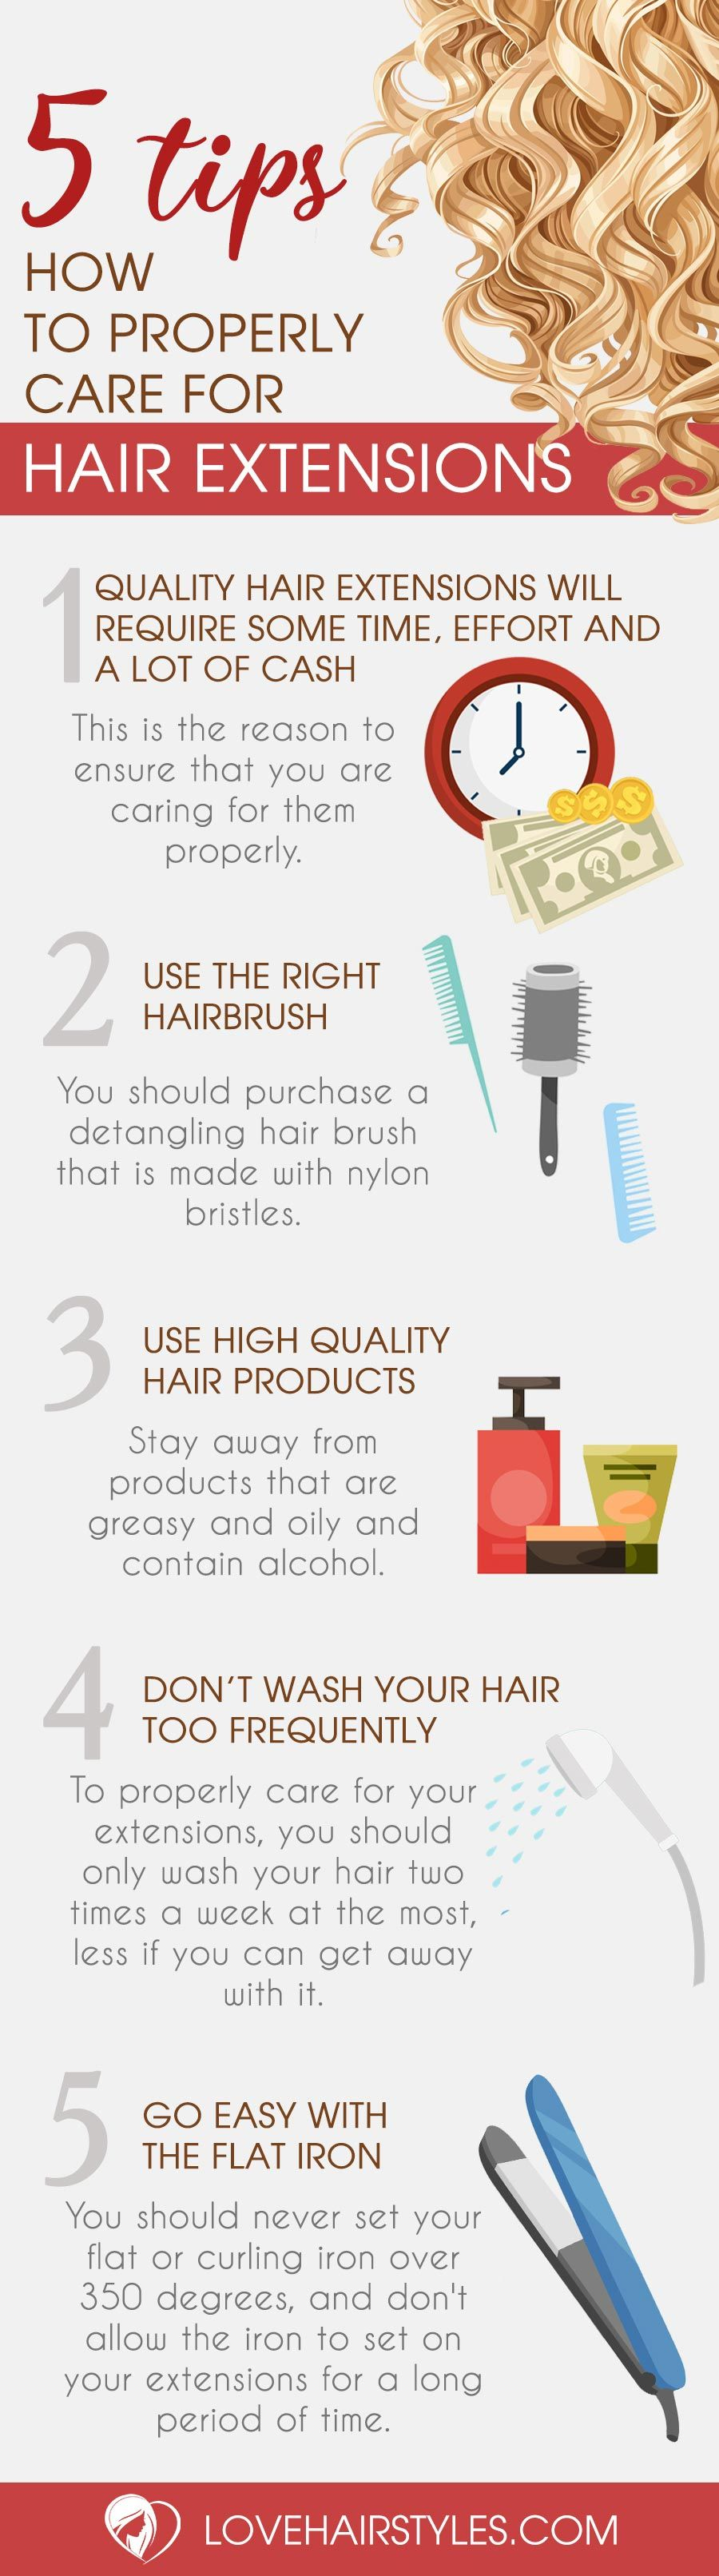 How To Care For Hair Extensions Infographic Pinterest Hair